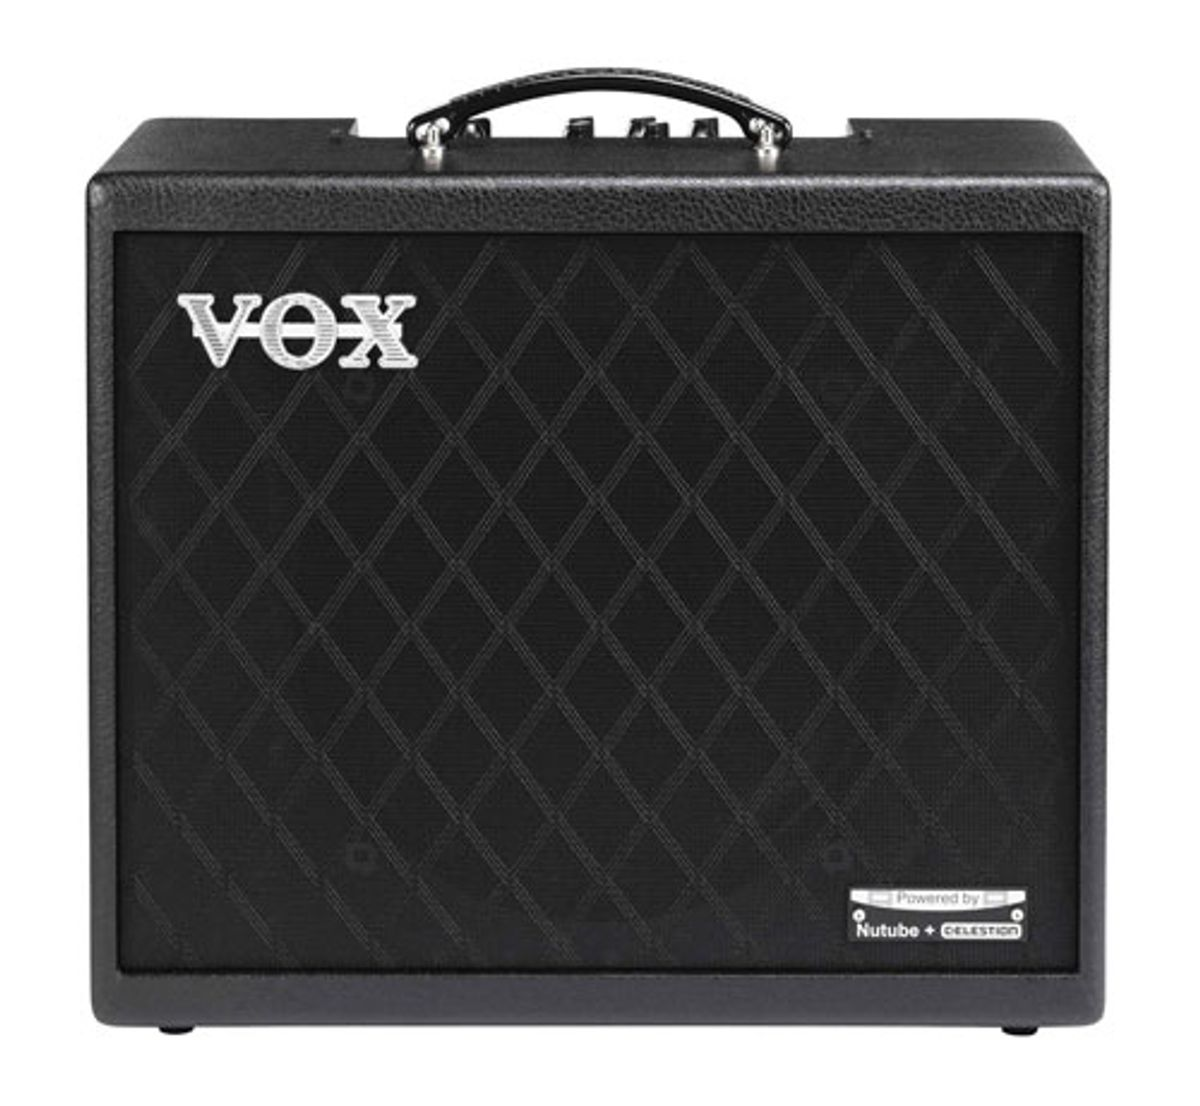 Vox Introduces the Cambridge50 Combo